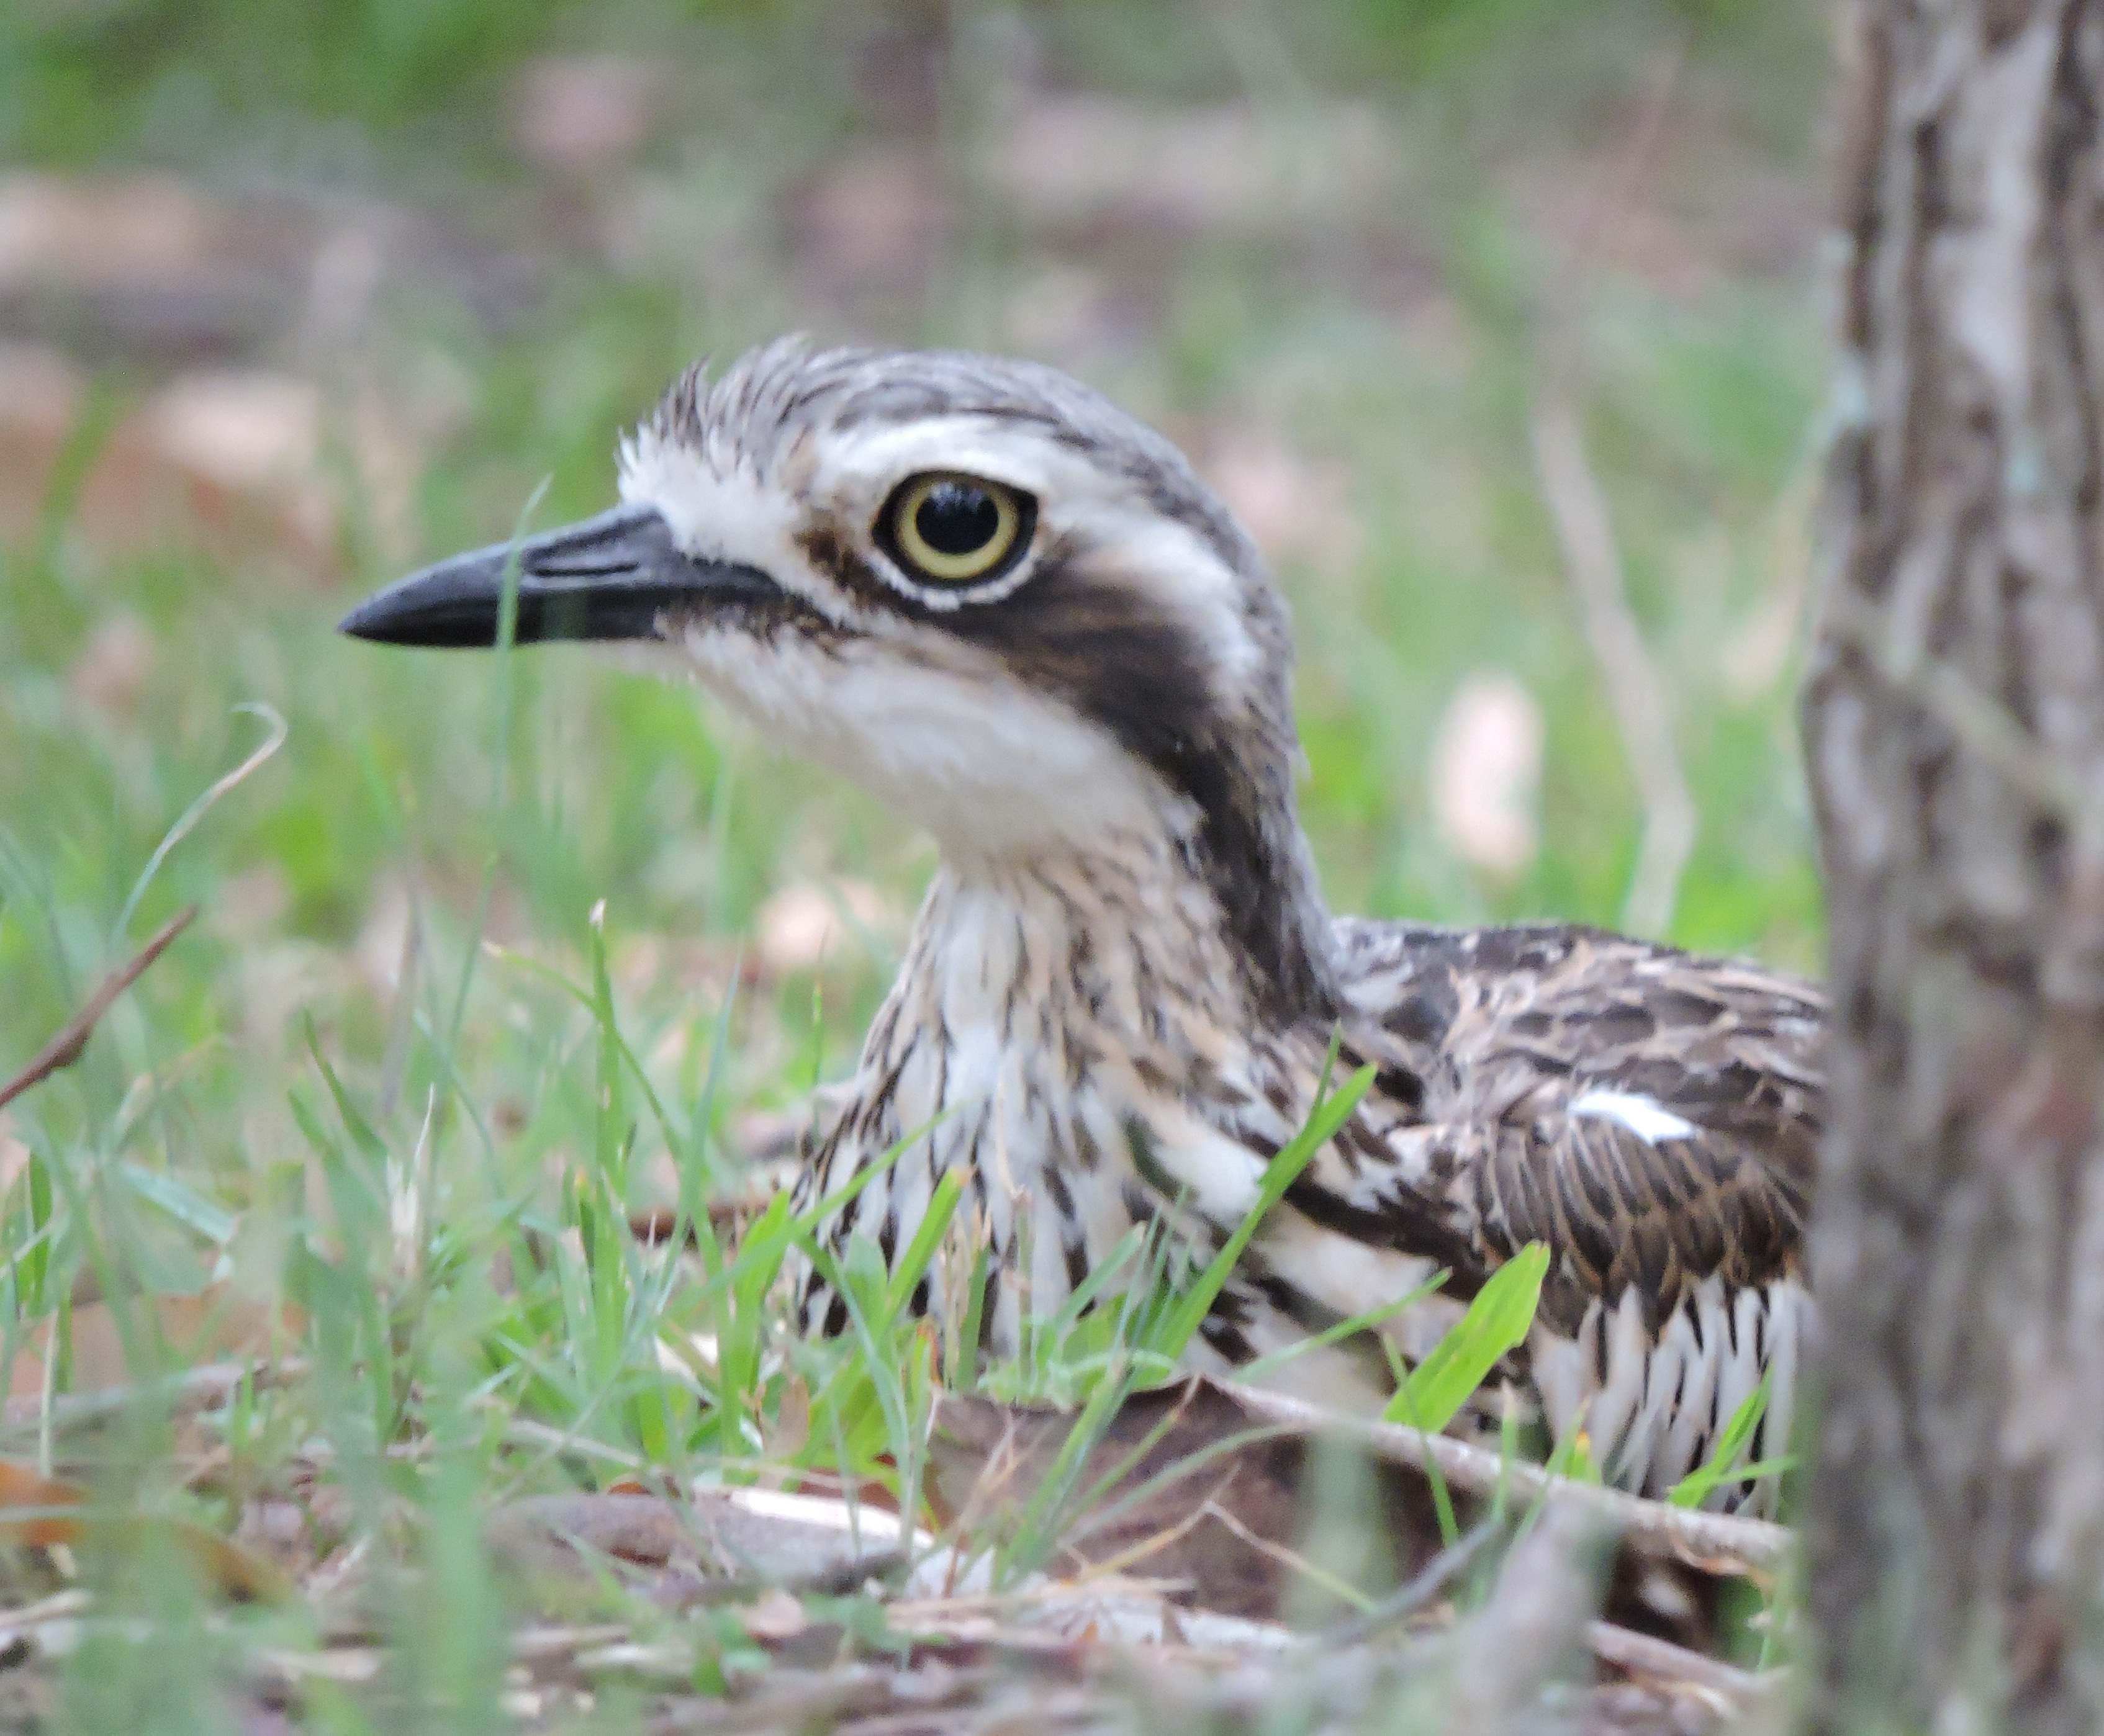 There are plenty of bush stone-curlews wandering around the island, and their weird, wild calls at night add to the atmosphere.